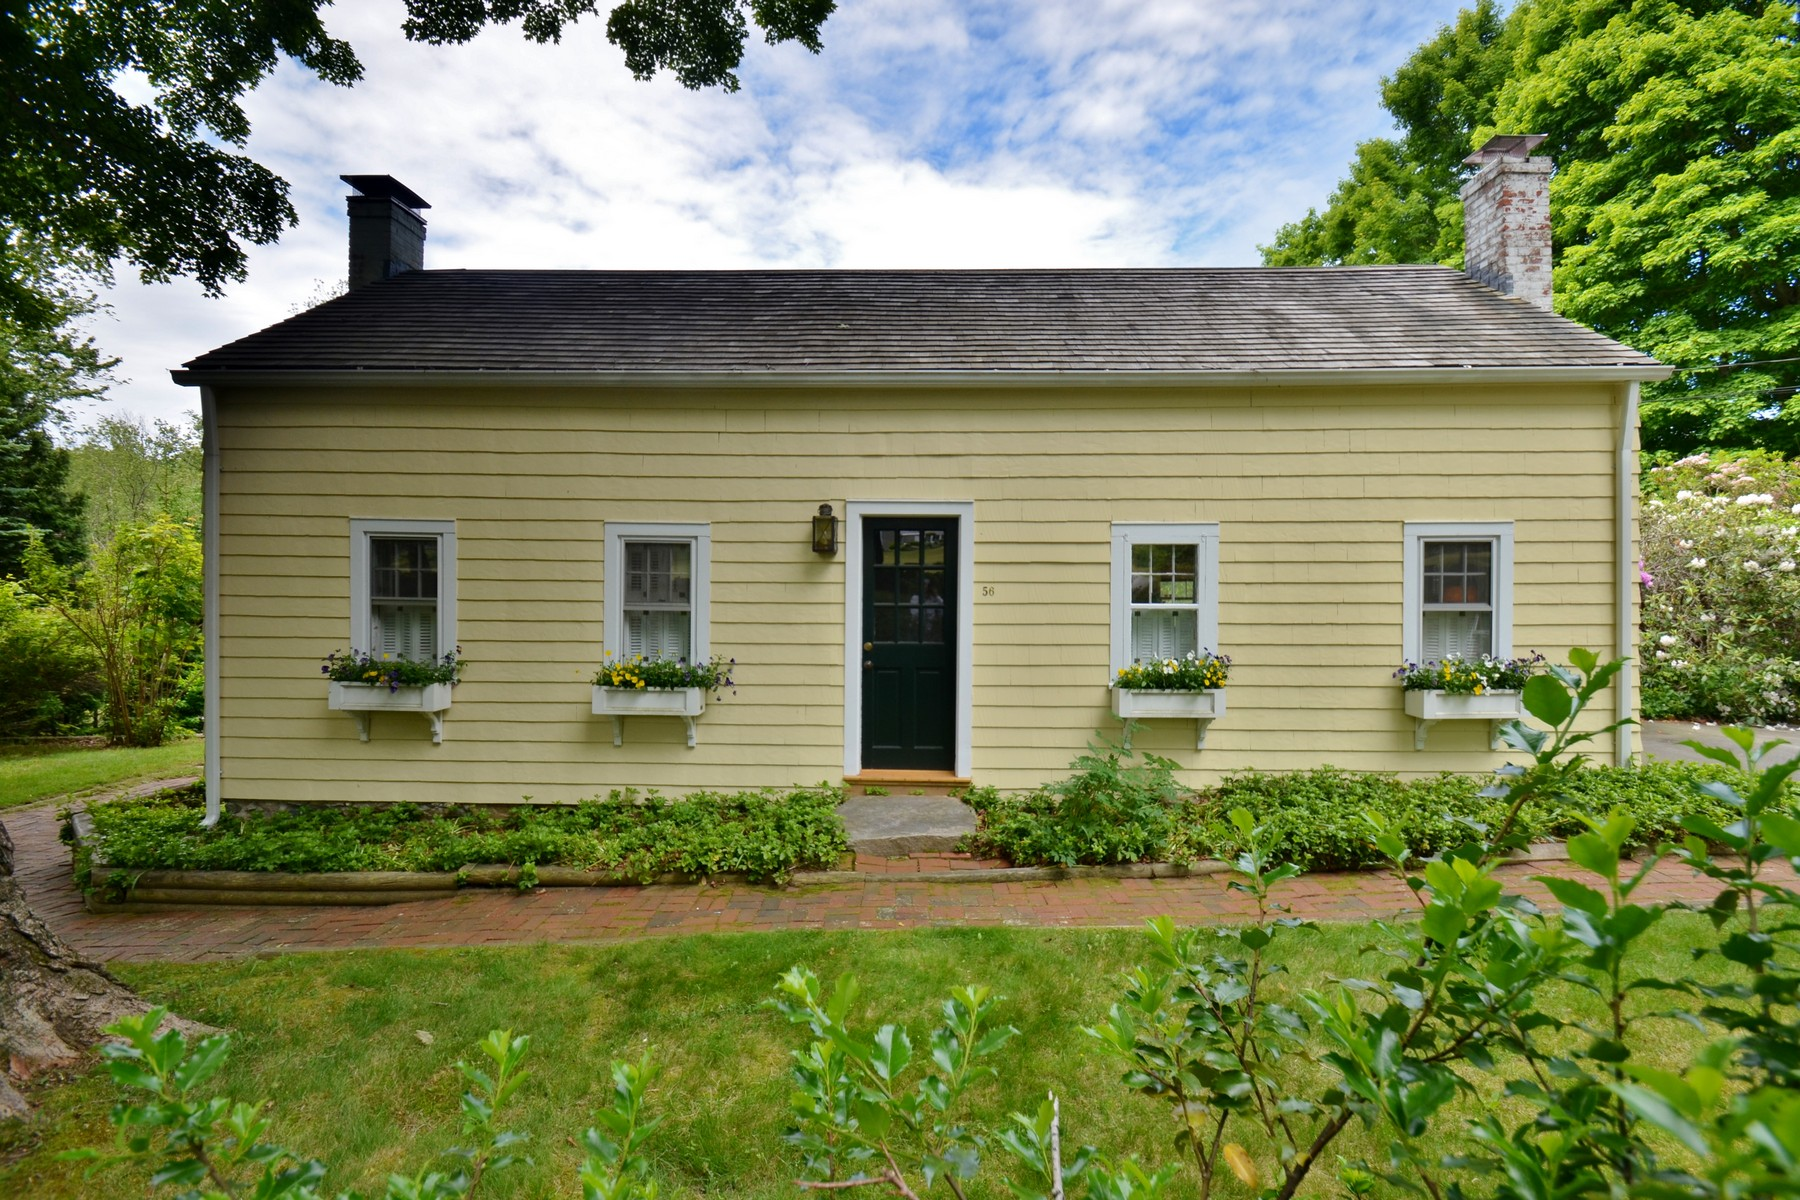 Single Family Home for Sale at Cape Abounds with Character & Charm 56 Sill Ln Old Lyme, Connecticut, 06371 United States